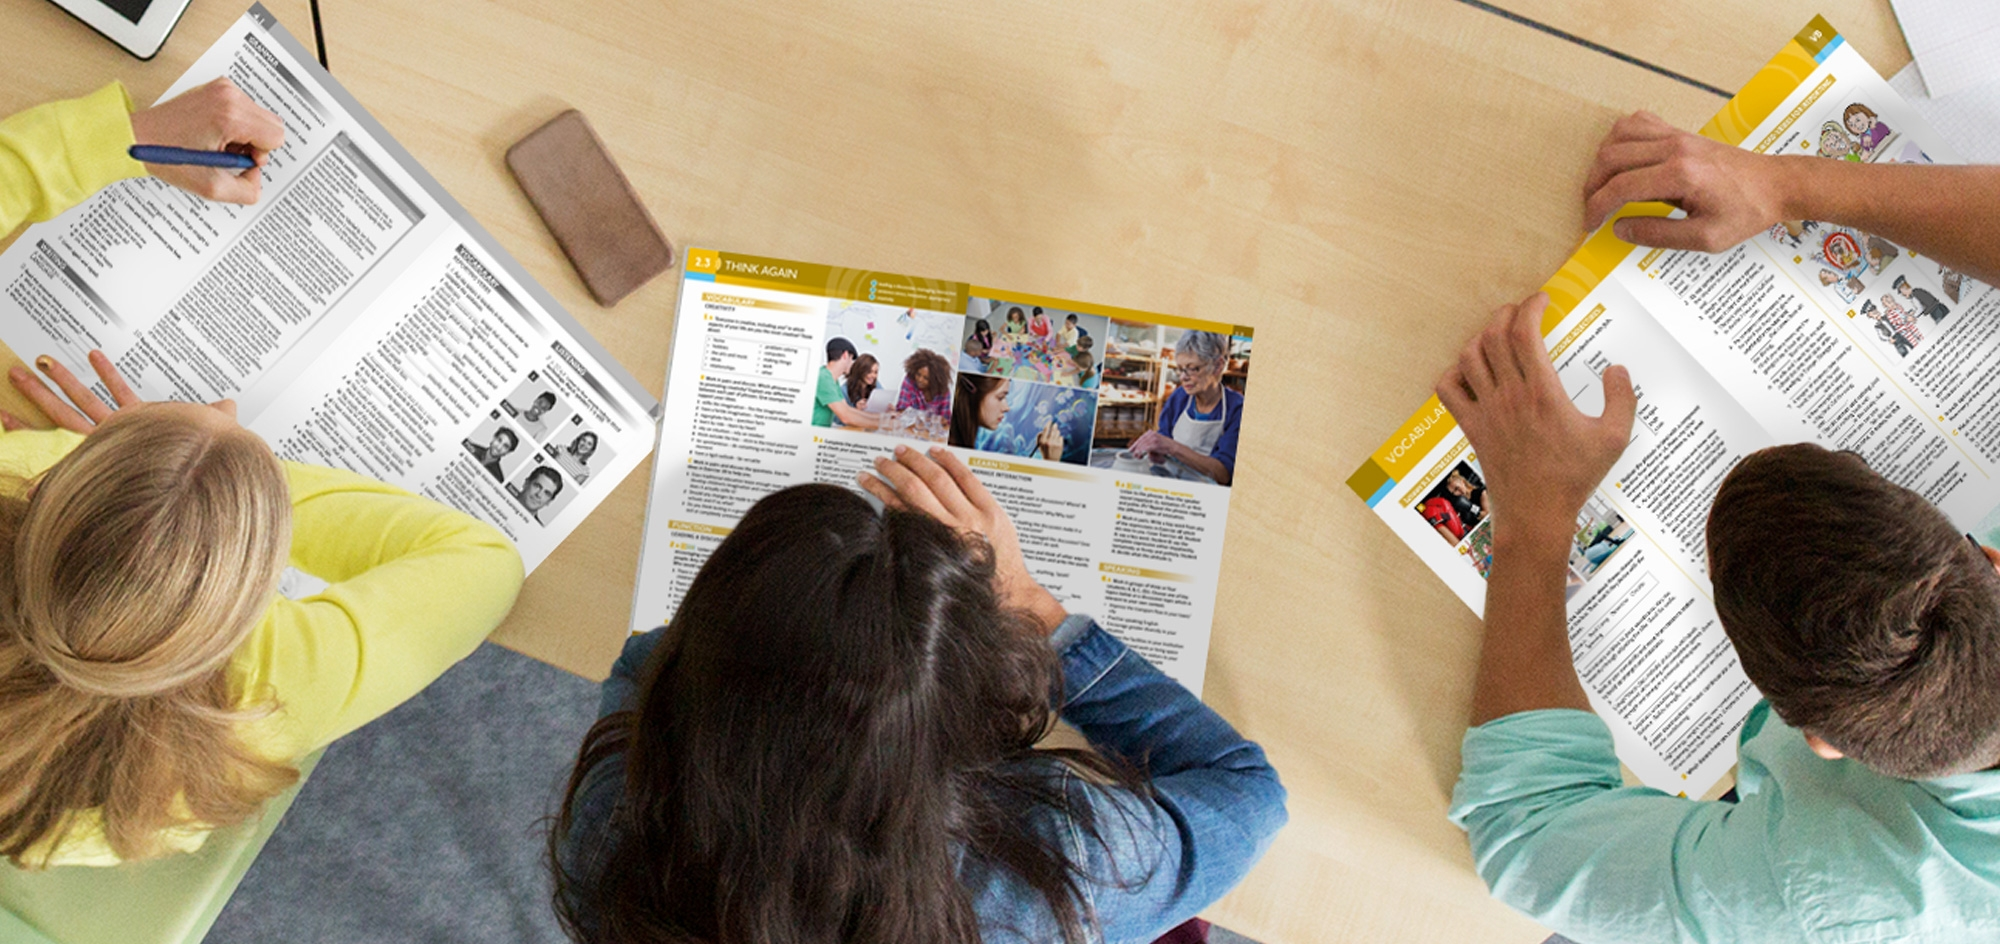 Blooberry Design – Pearson – students looking at books – Publishing design